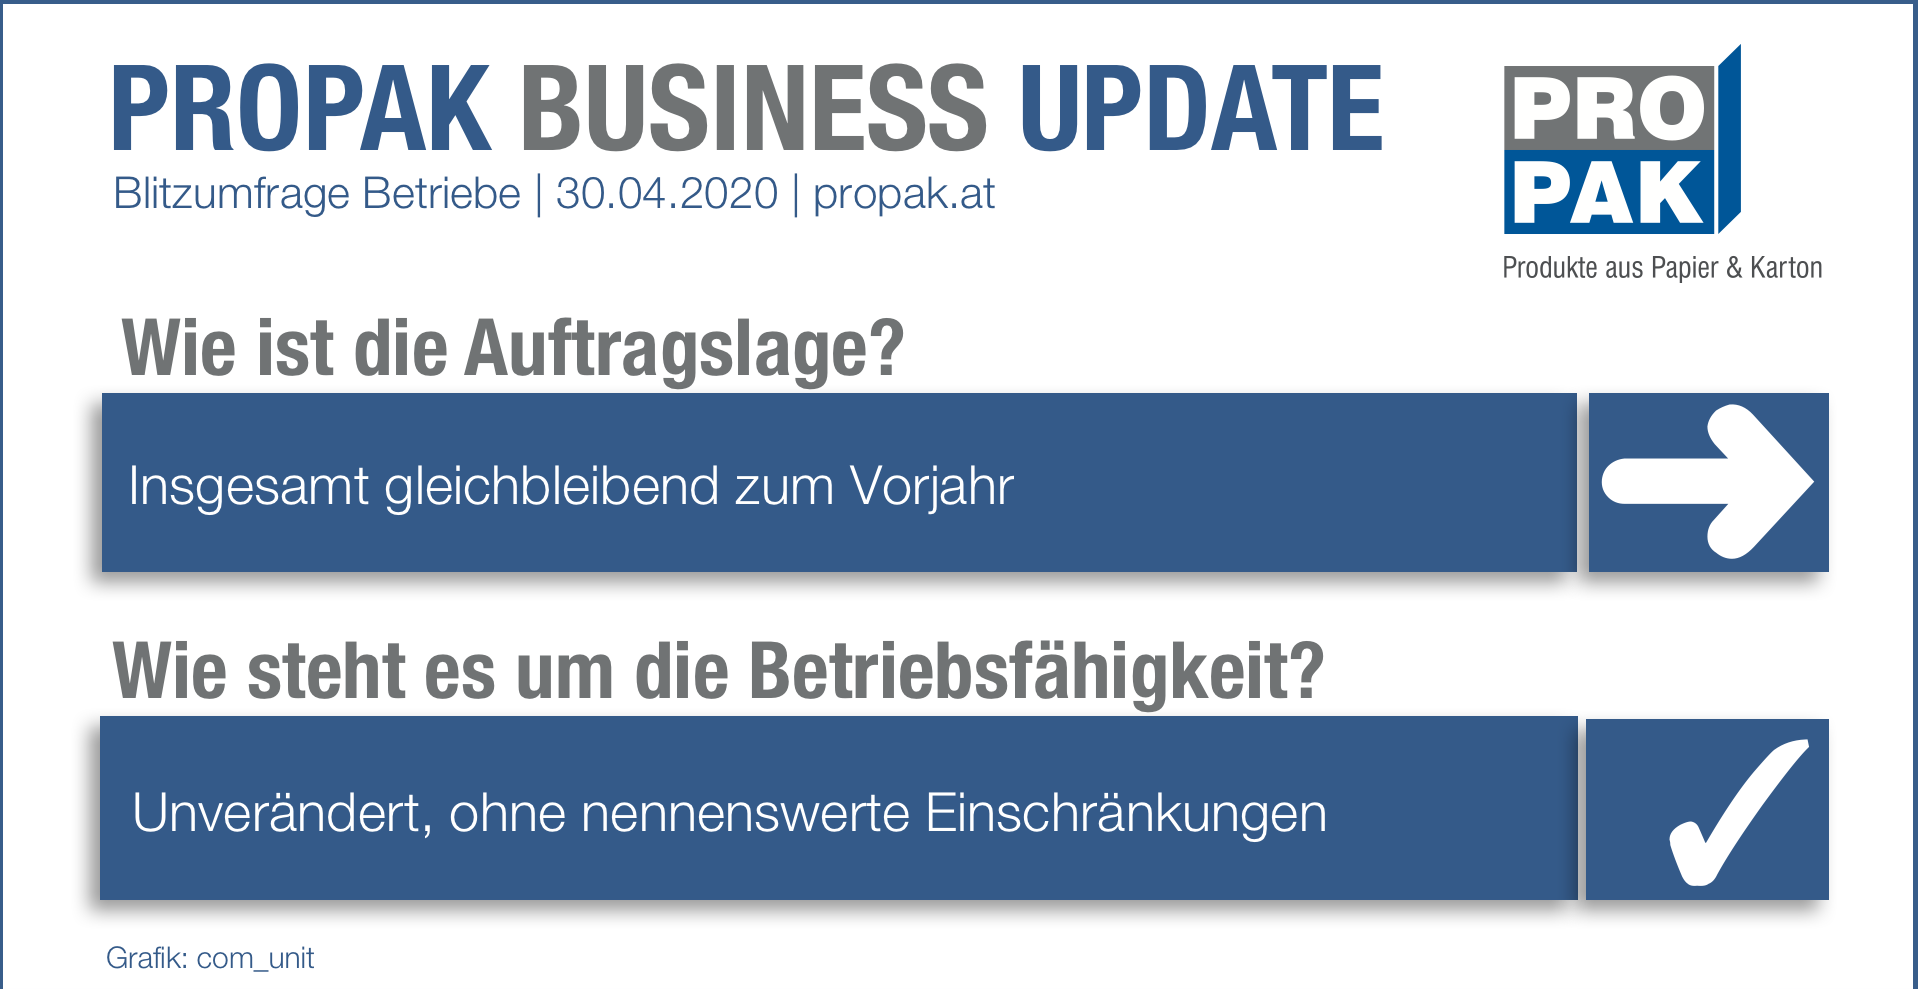 PROPAK Business Update Detail